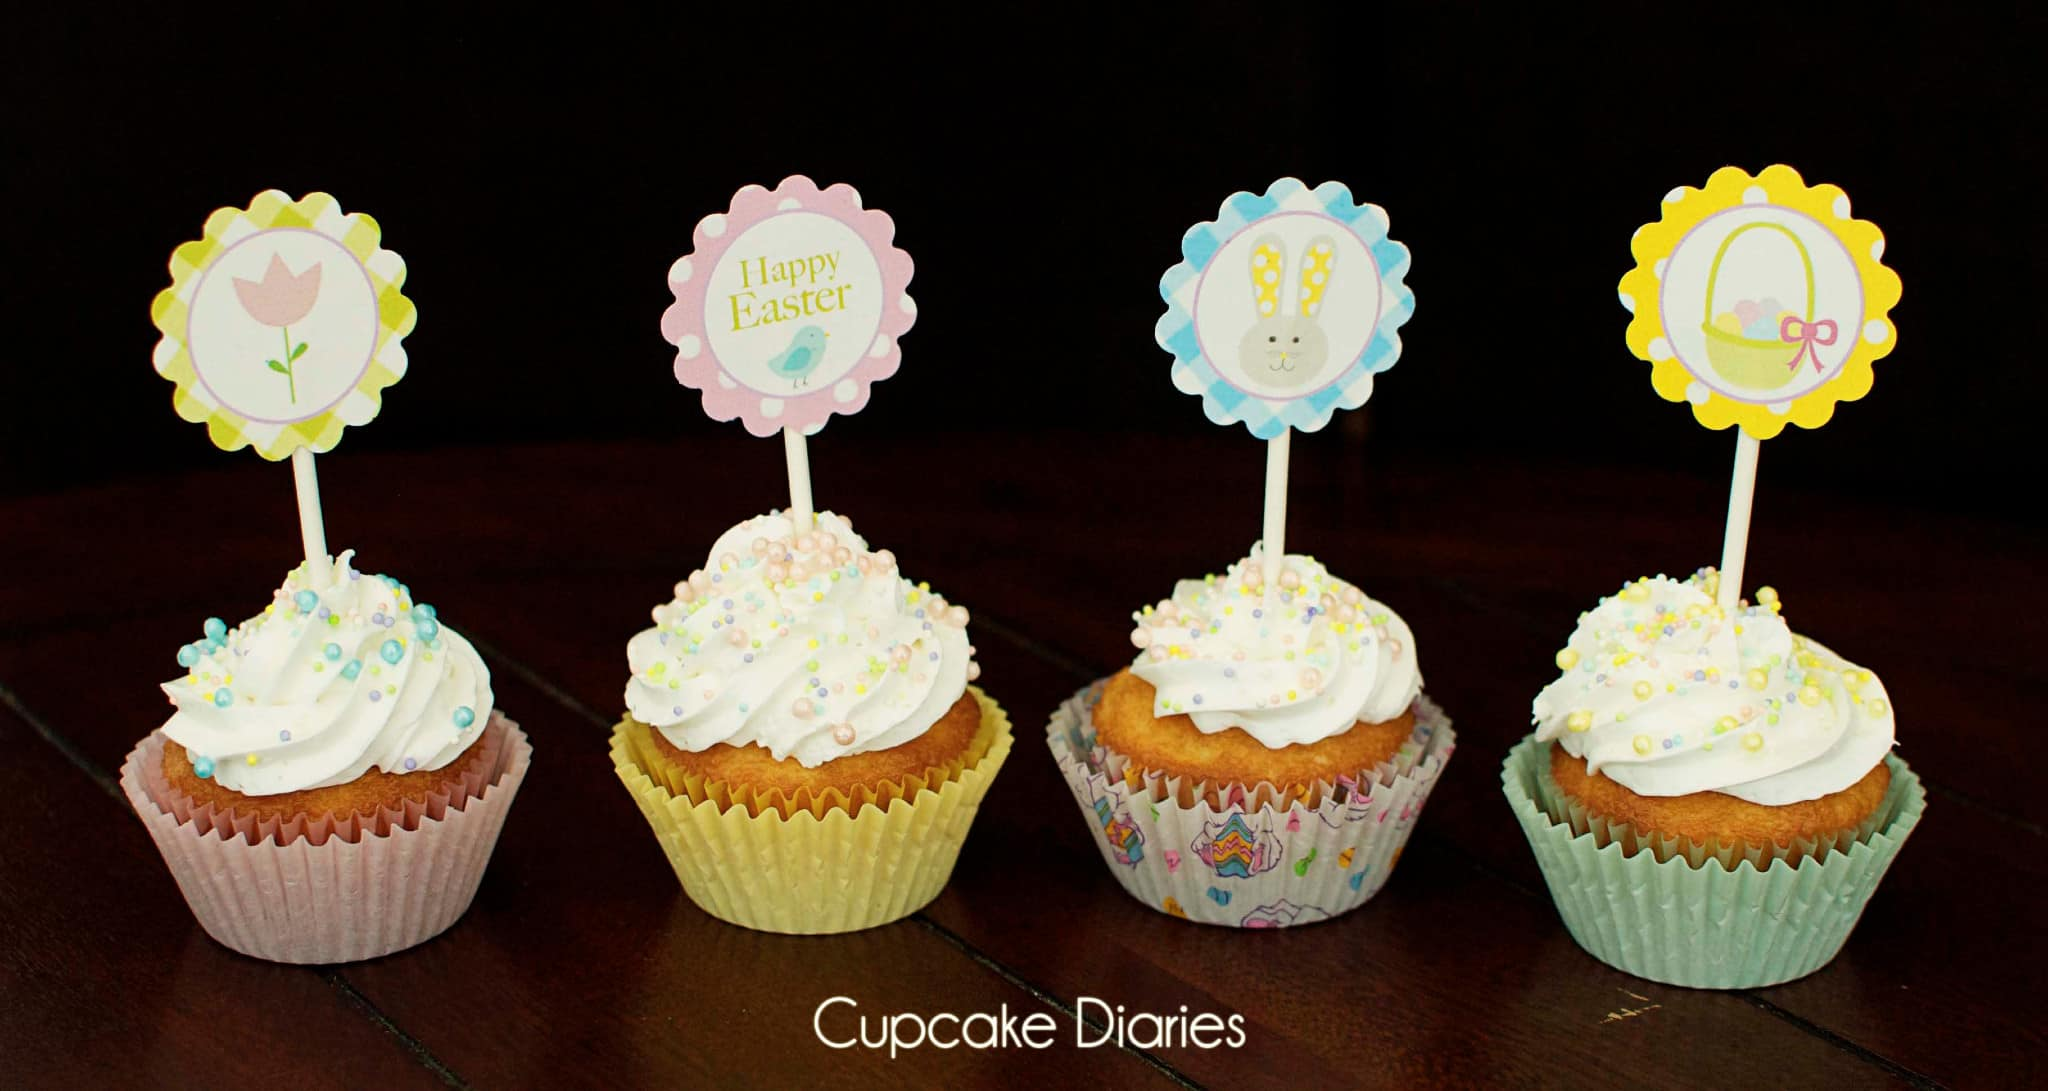 Free Easter Cupcake Toppers Printable on Pinterest Decorating Ideas Dr Seuss